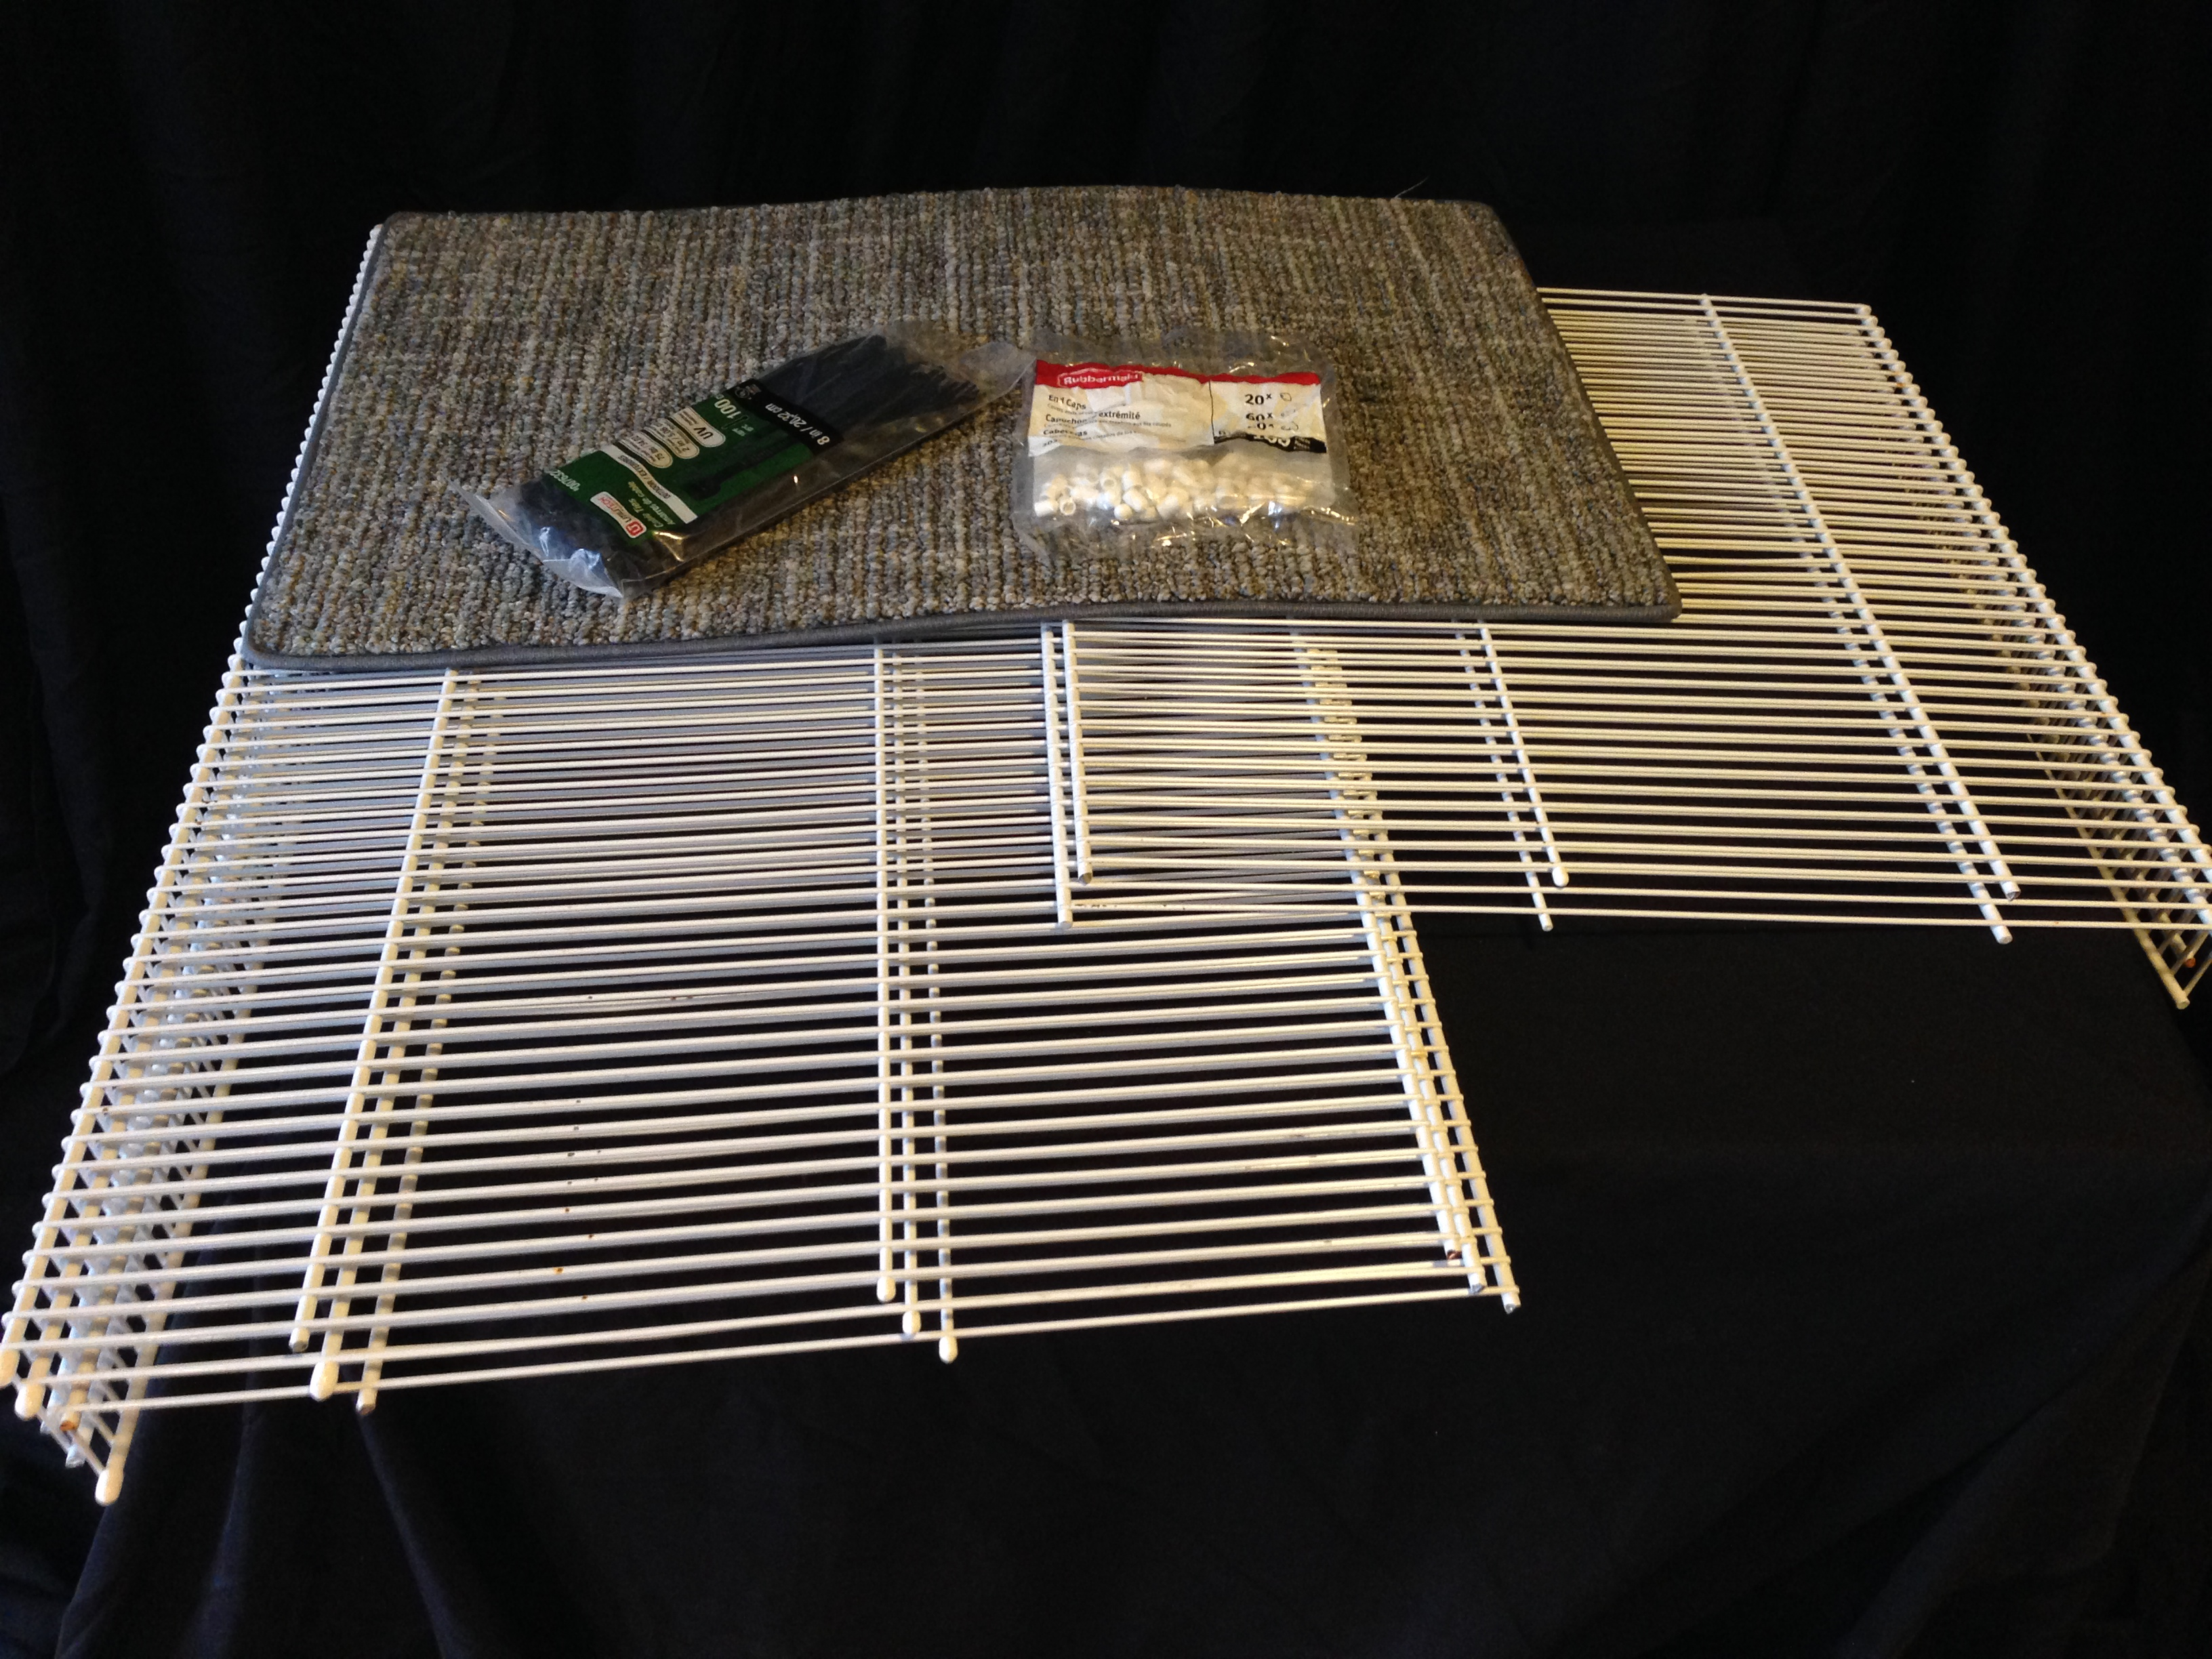 Catio materials: Wire shelving, outdoor zip ties,plastic end caps, and a sample carpet square.